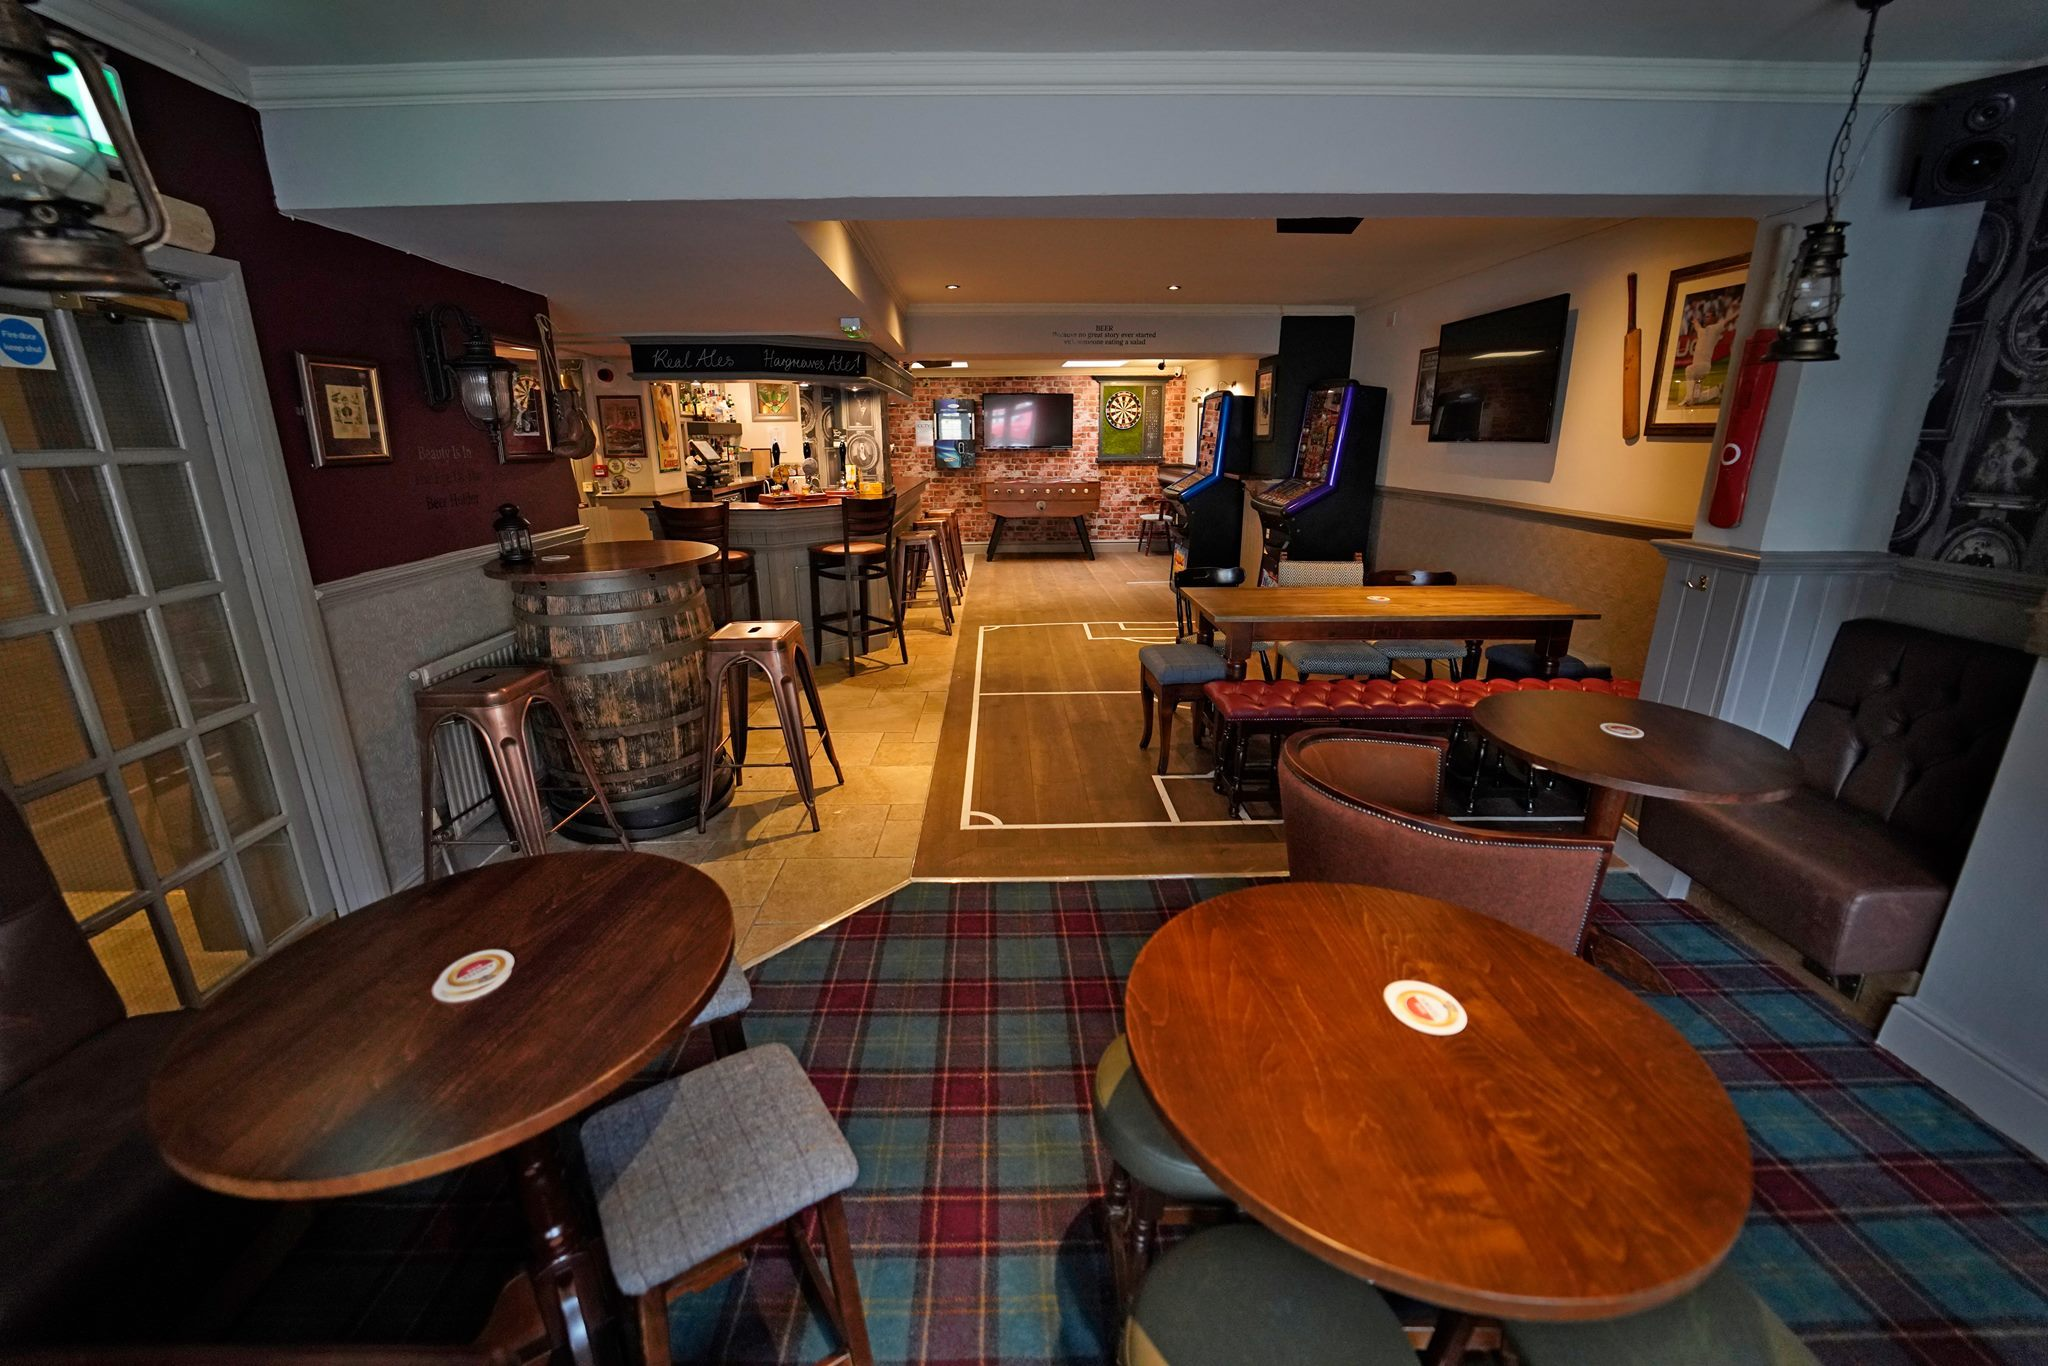 The Stanhill Pub and Kitchen in Oswaldtwistle reopened after more than £300,000 was spent renovating the premises.